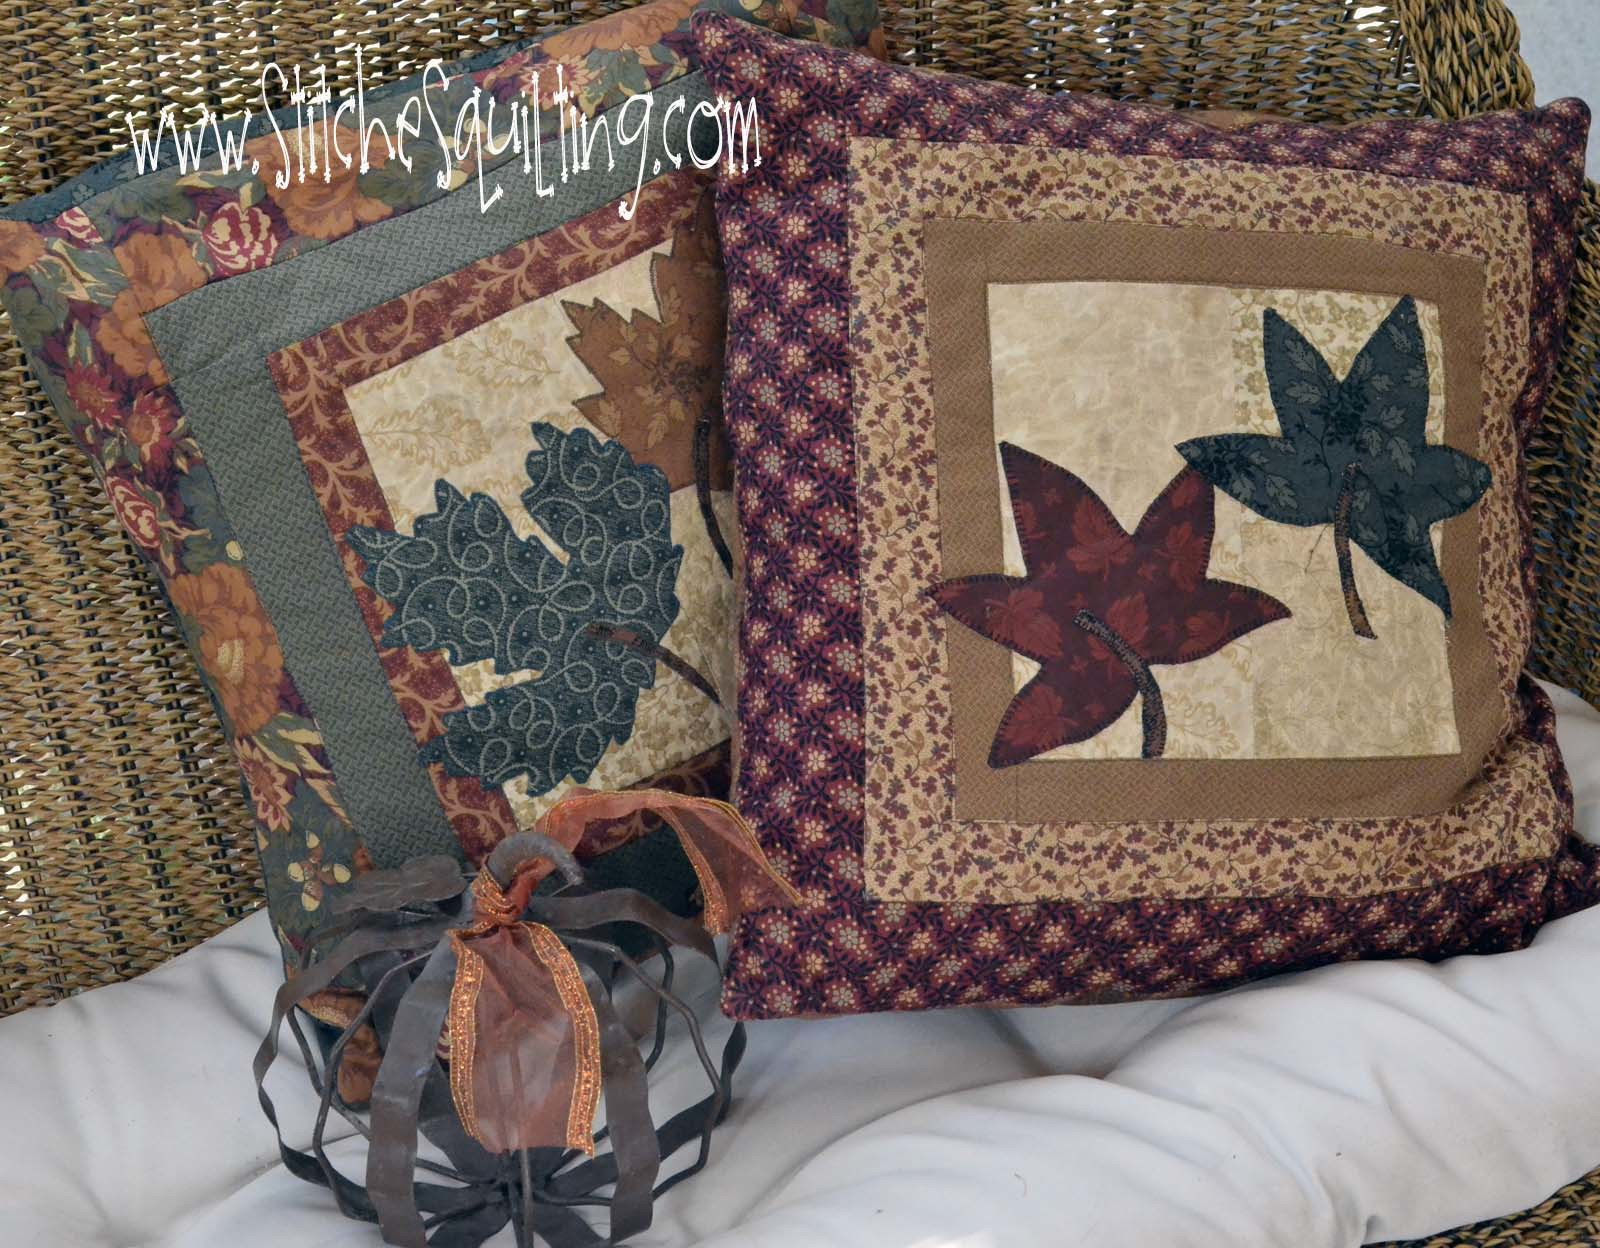 Toss around some Fall Thanksgiving Quilted Pillows for people to nap with